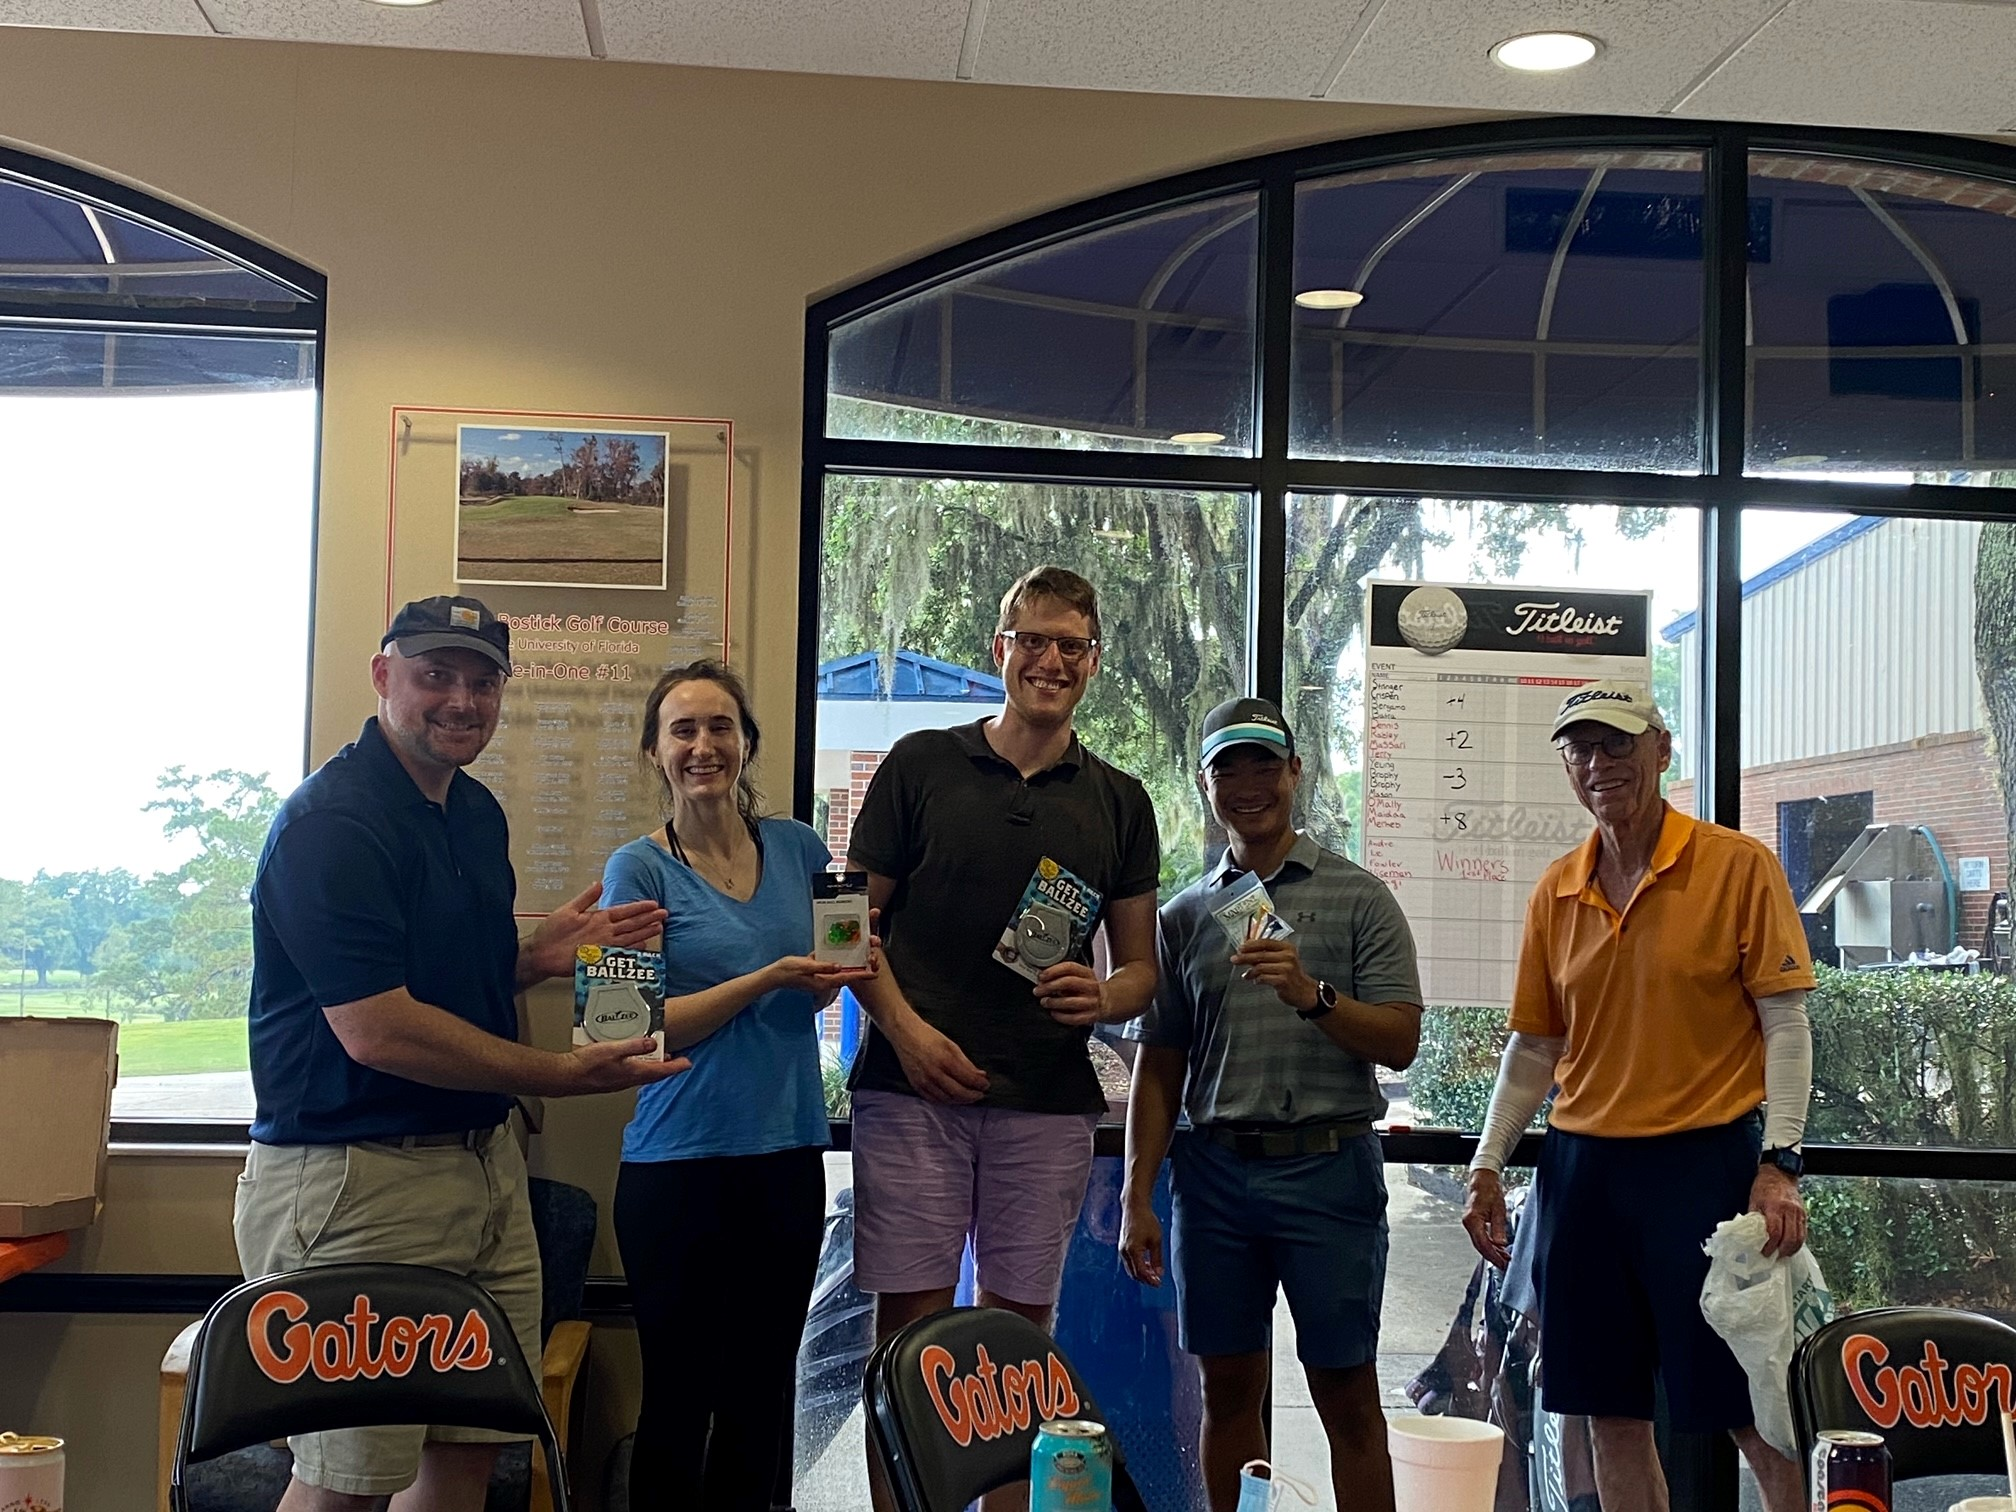 a group picture of doctor mason, whitney brophy, doctor carl brophy, doctor yeung and doctor stringer.  all are wearing casual clothes.  they had just finished a golf tournament.